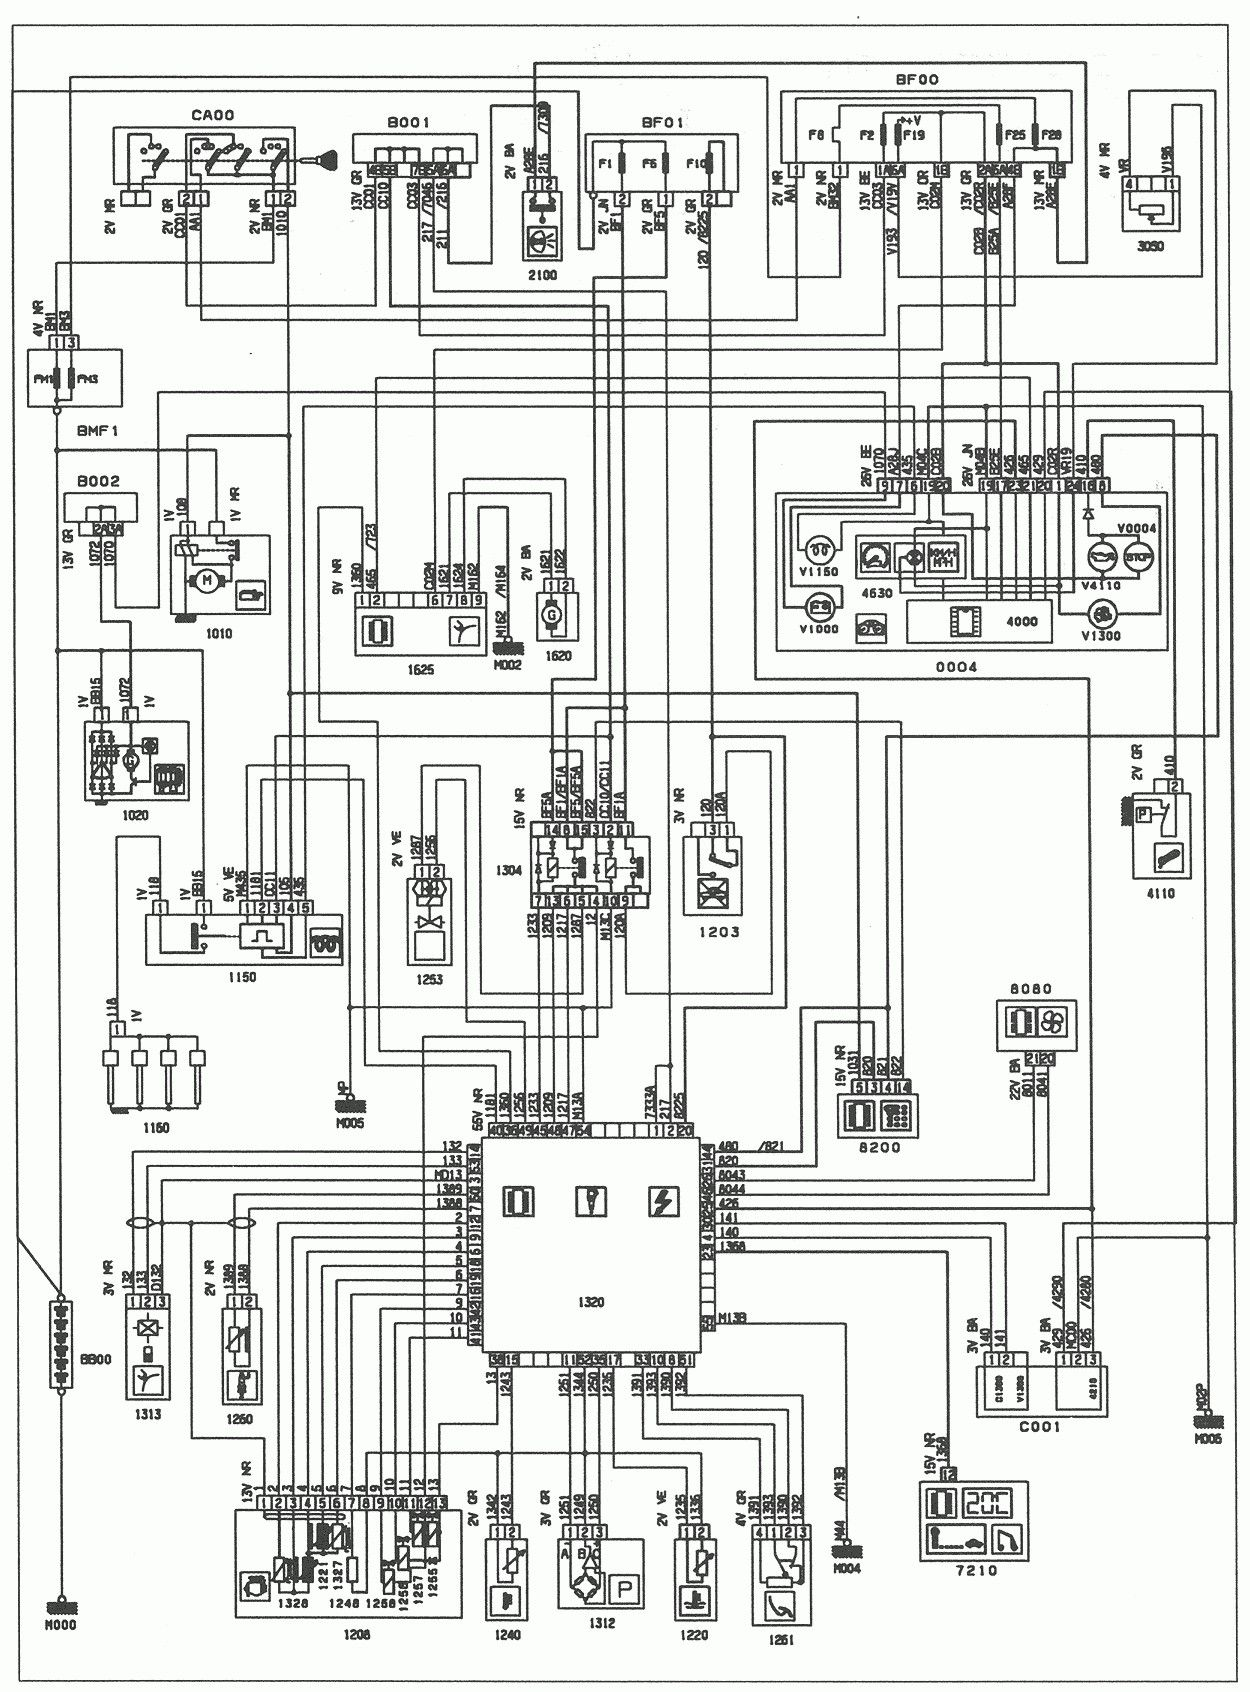 Unique Citroen Dispatch Glow Plug Relay Wiring Diagram #